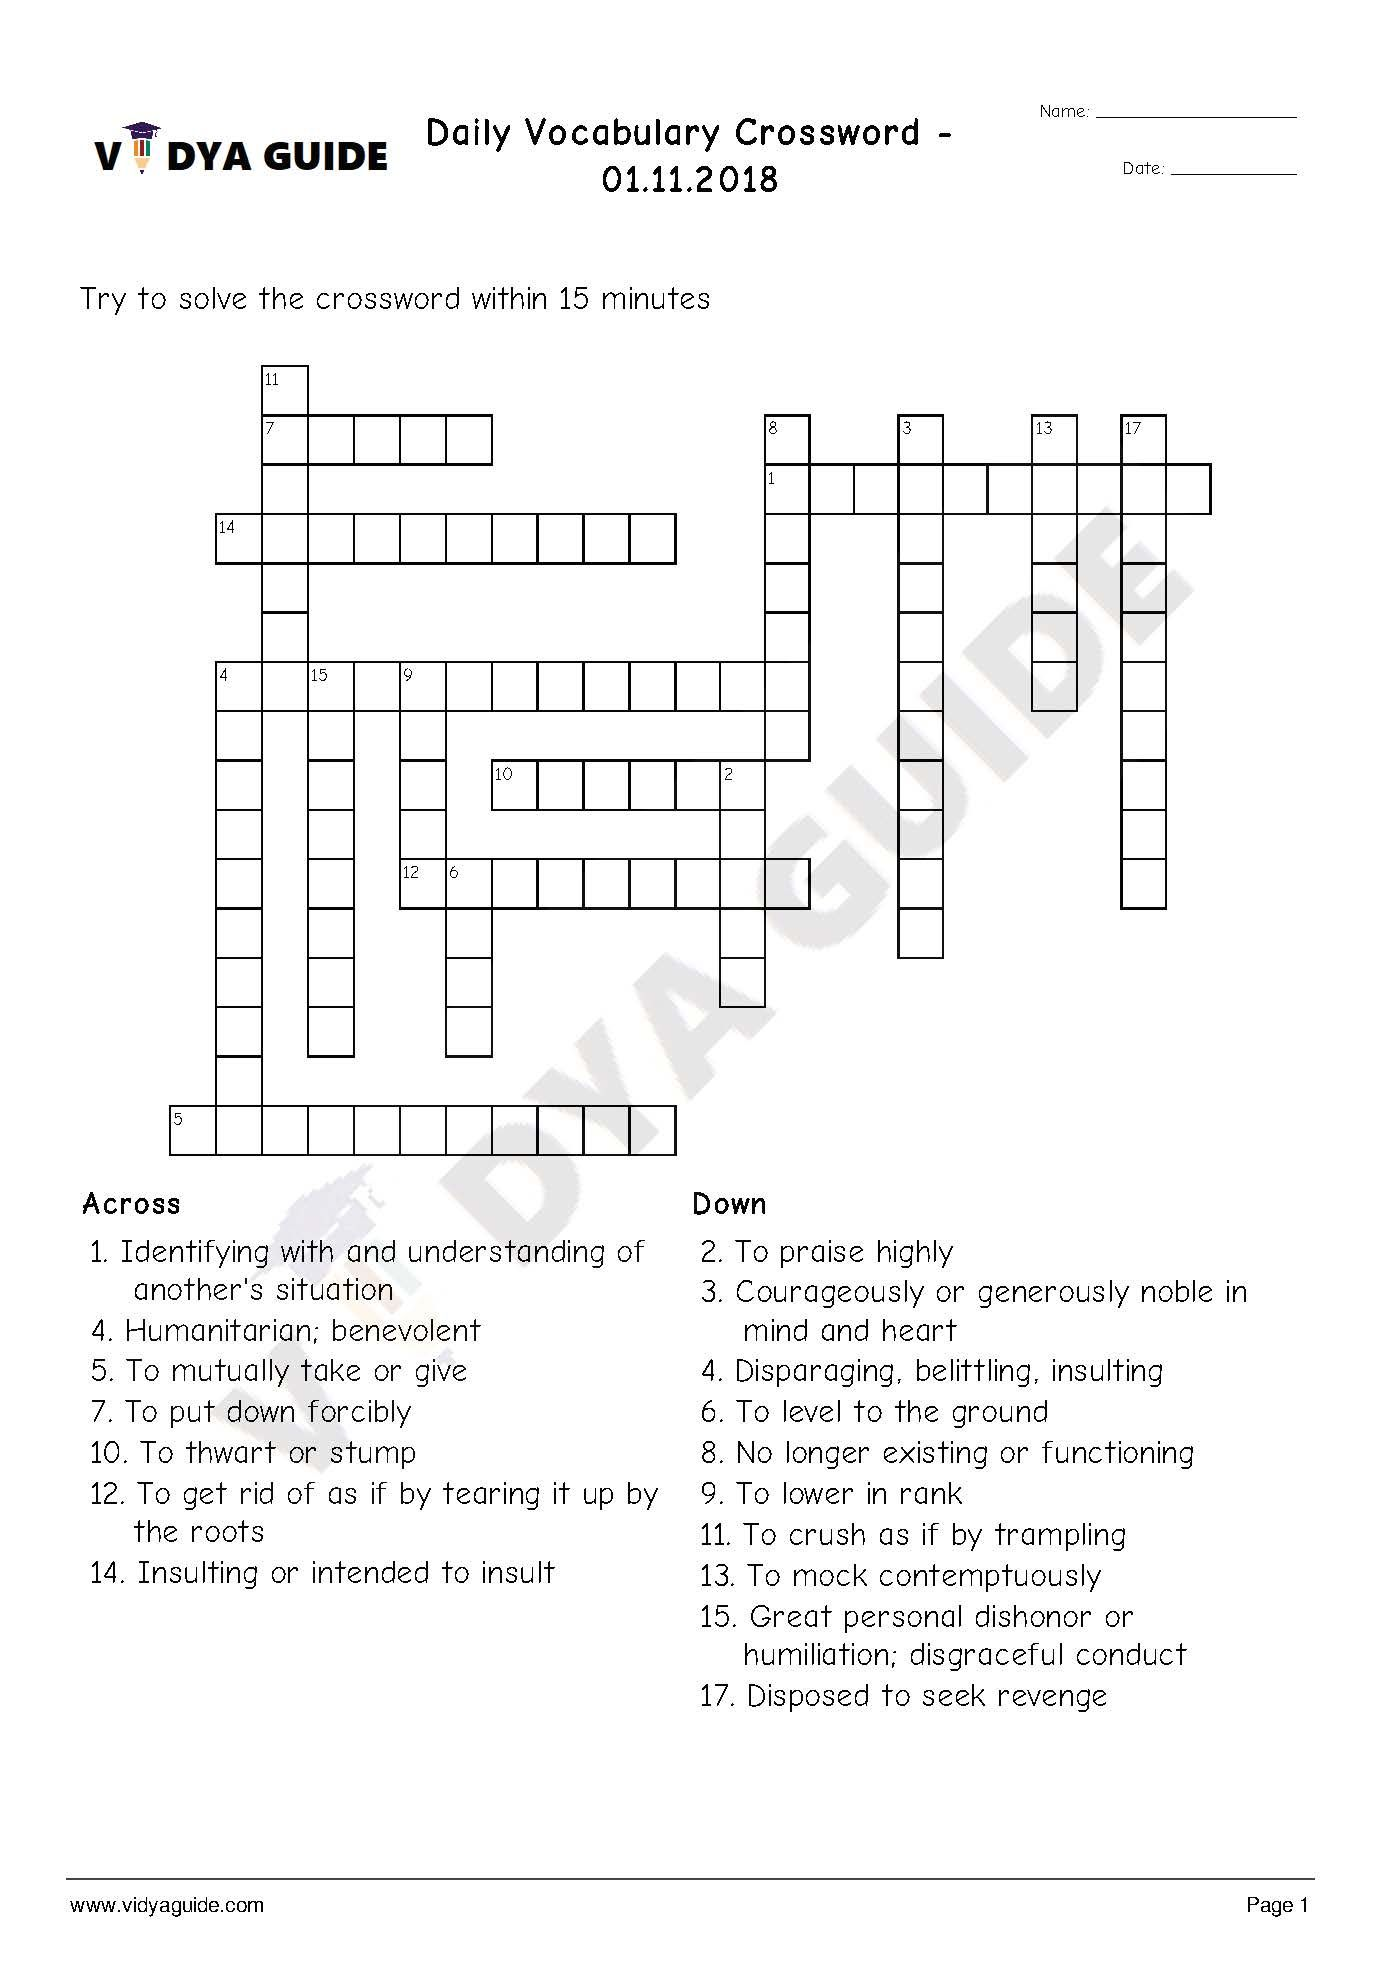 Daily Crossword Puzzle For English Vocabulary